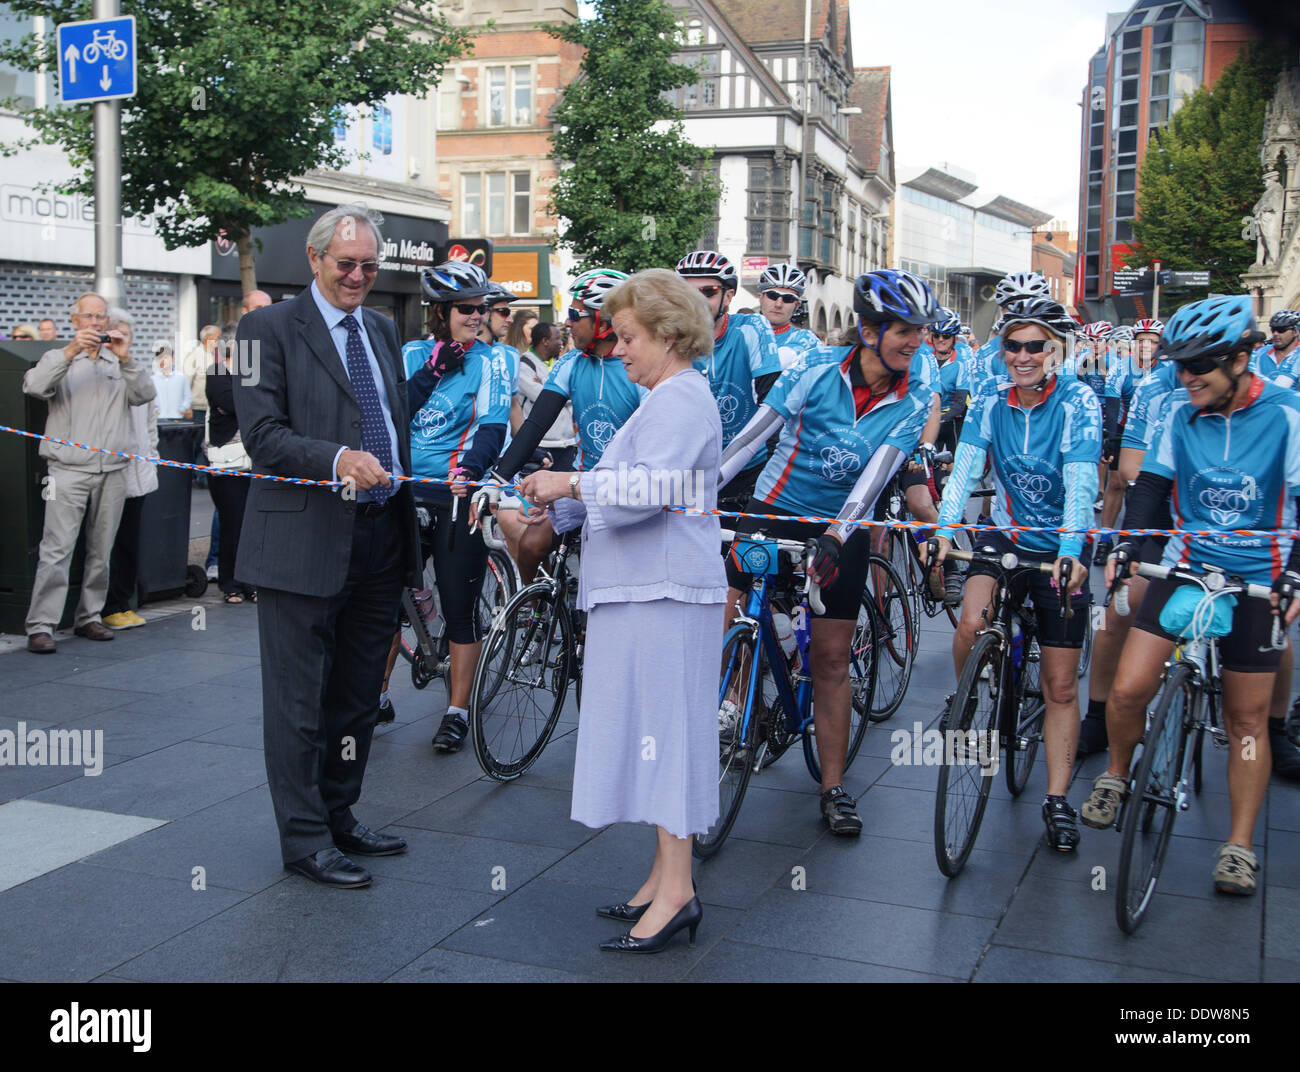 Mr. Michael Turnbull, chairman of Hope, holds the tape for Lady Gretton, Lord Lieutenant of Leicestershire. who is about to cut it and send the riders off on their 410 mile journey. - Stock Image